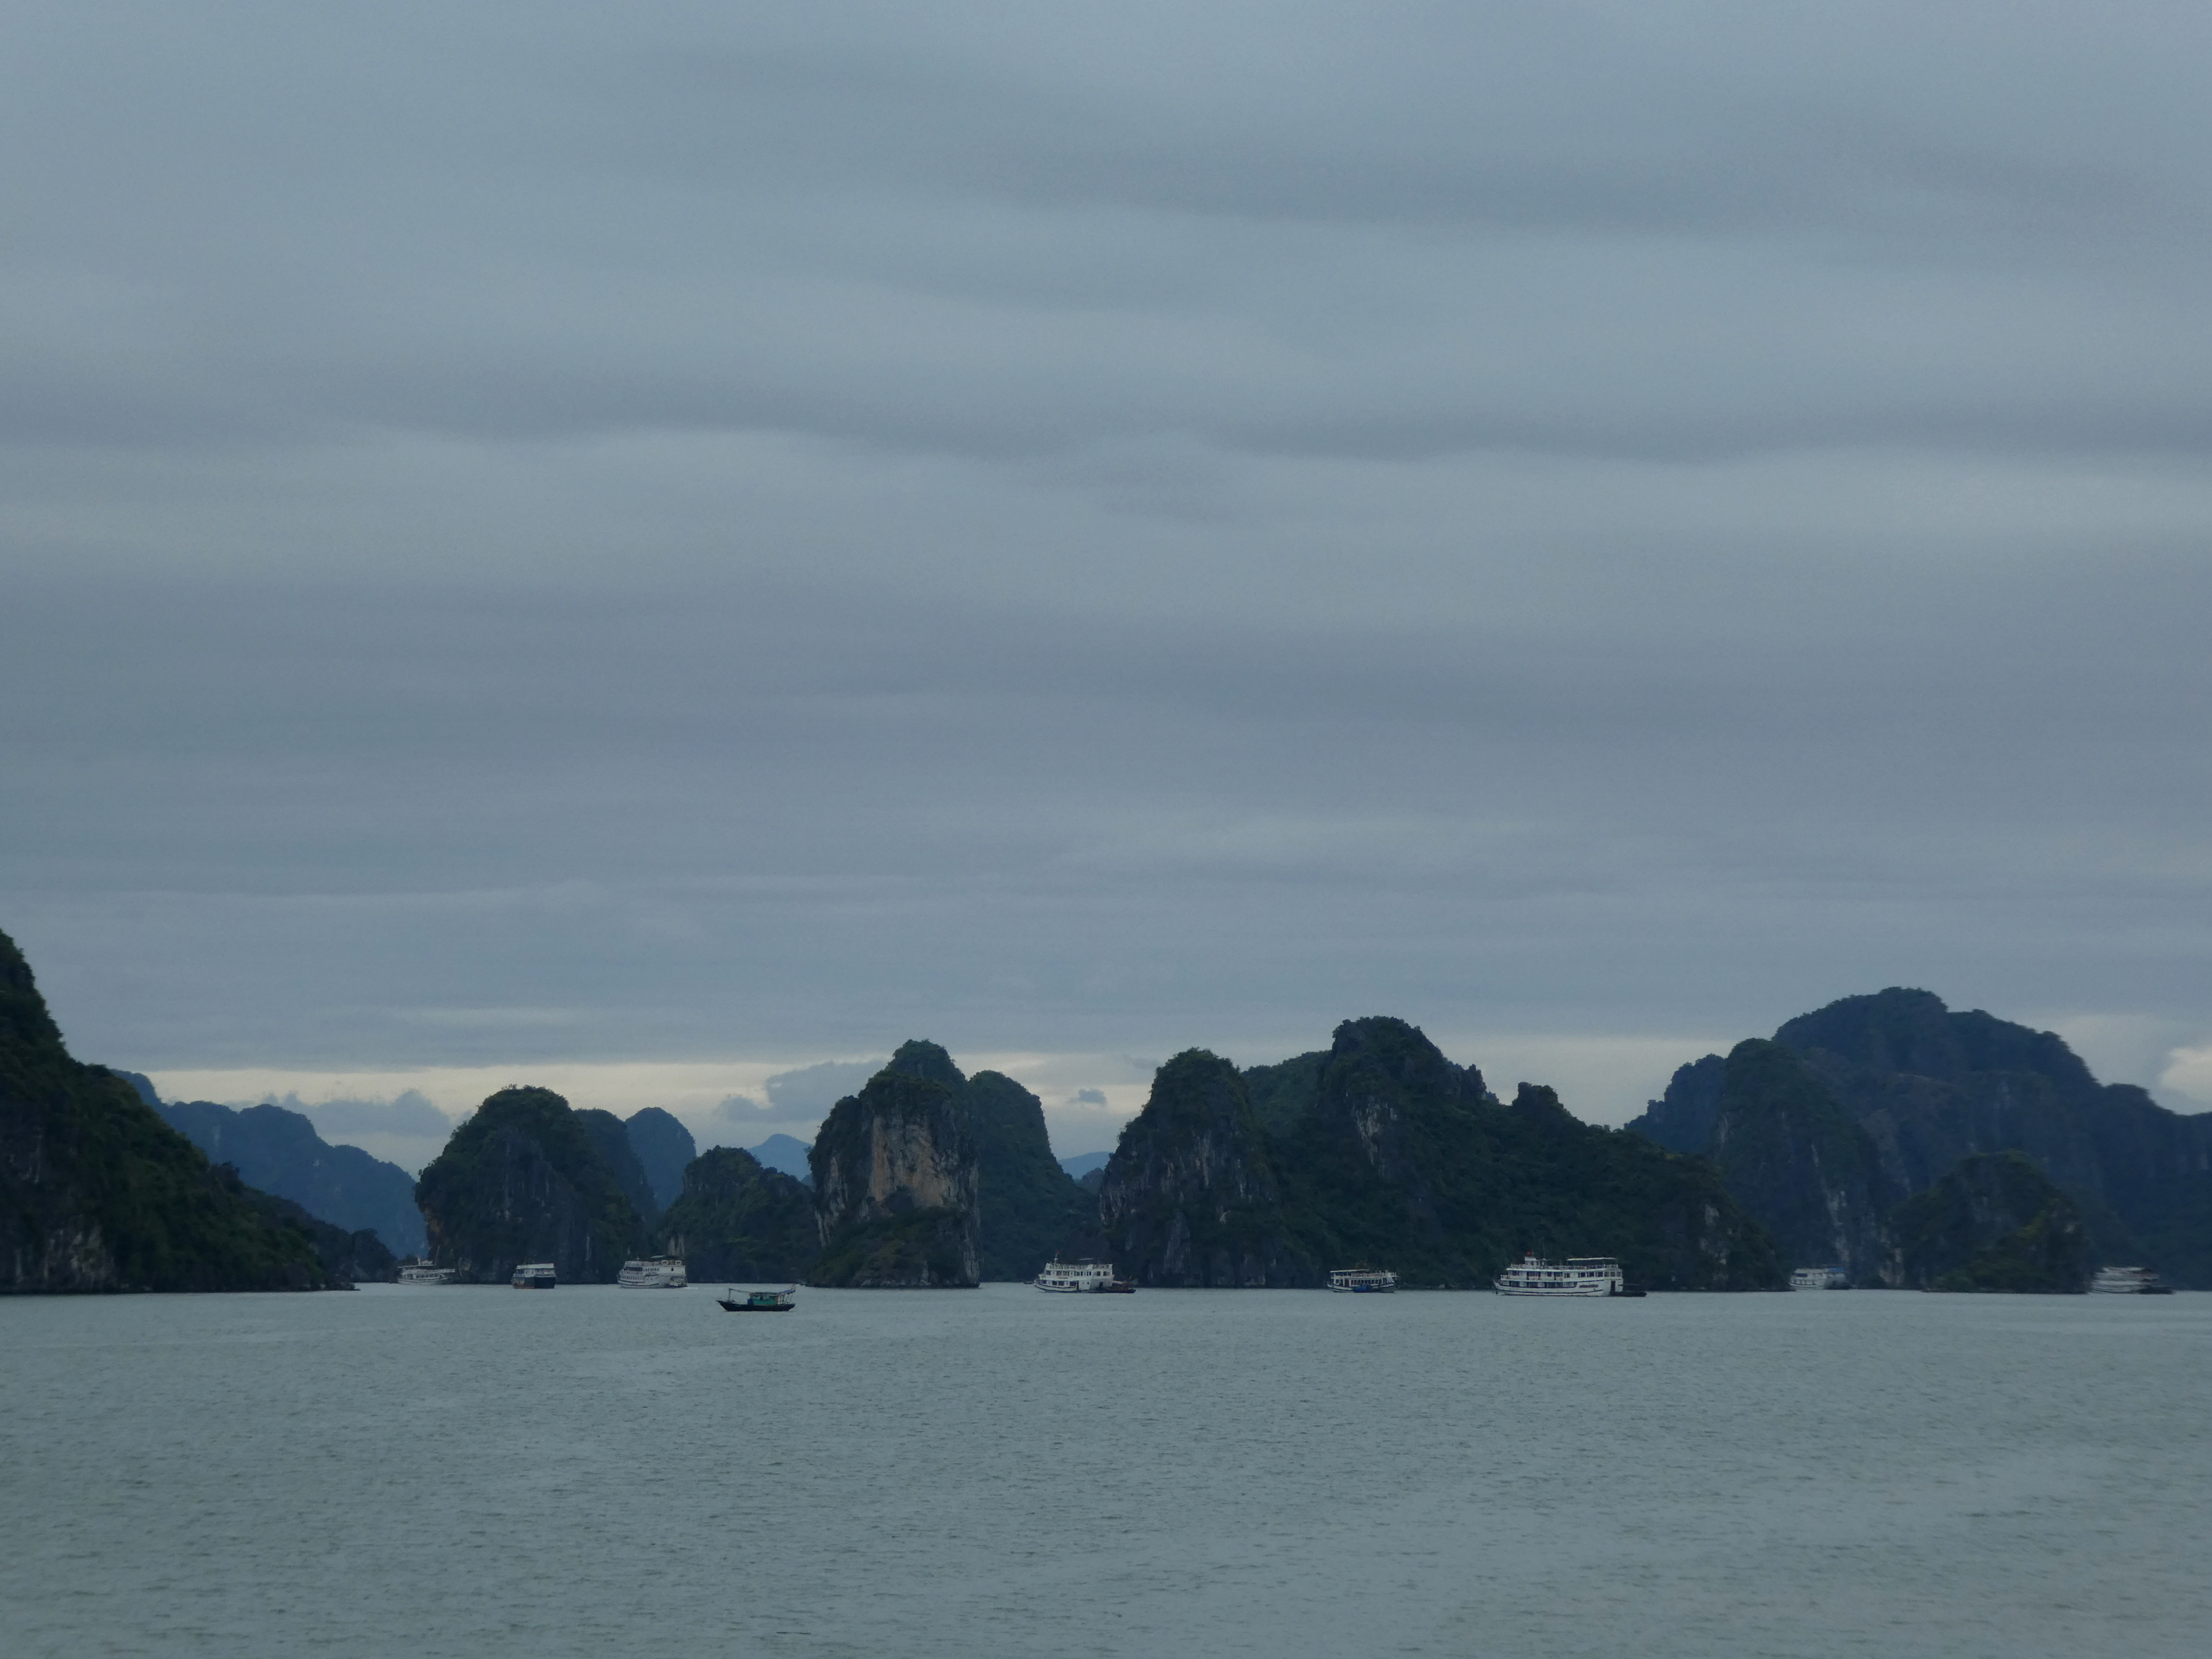 Halong Bay Cruise Day 2 and Chilling in Hanoi.